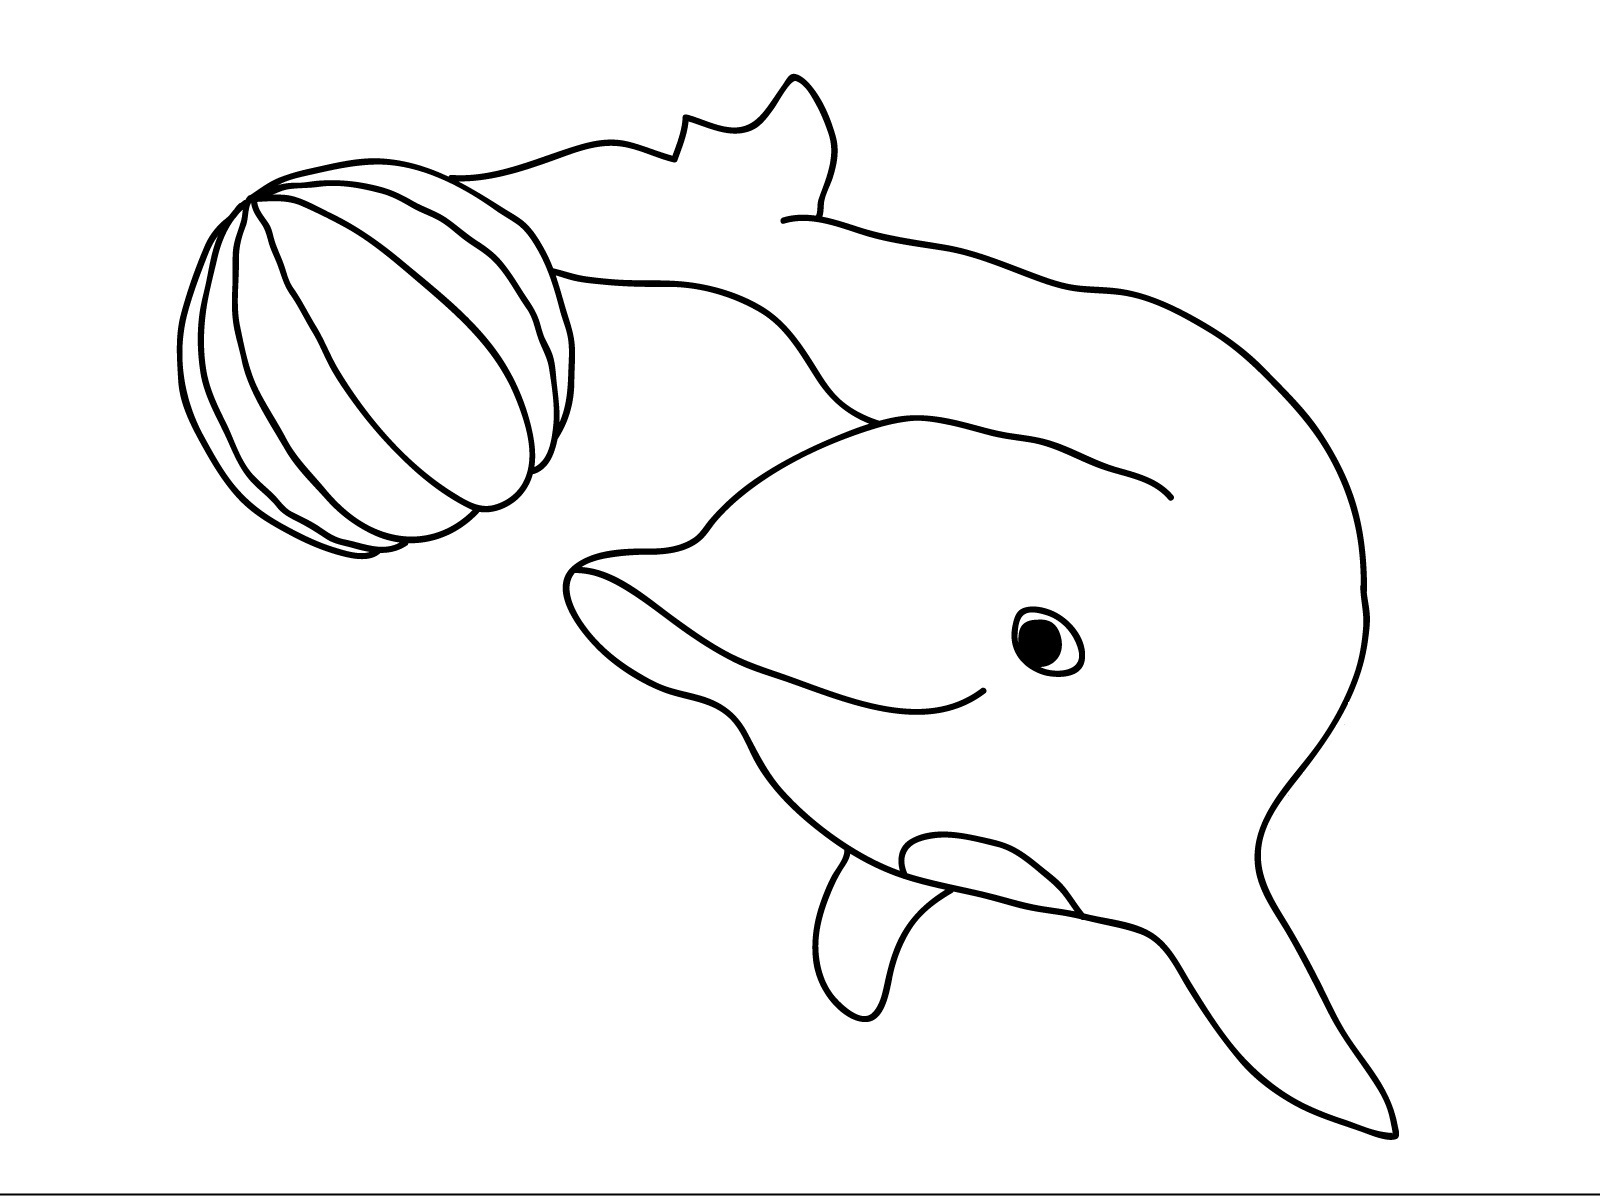 dolfin coloring pages - photo#32